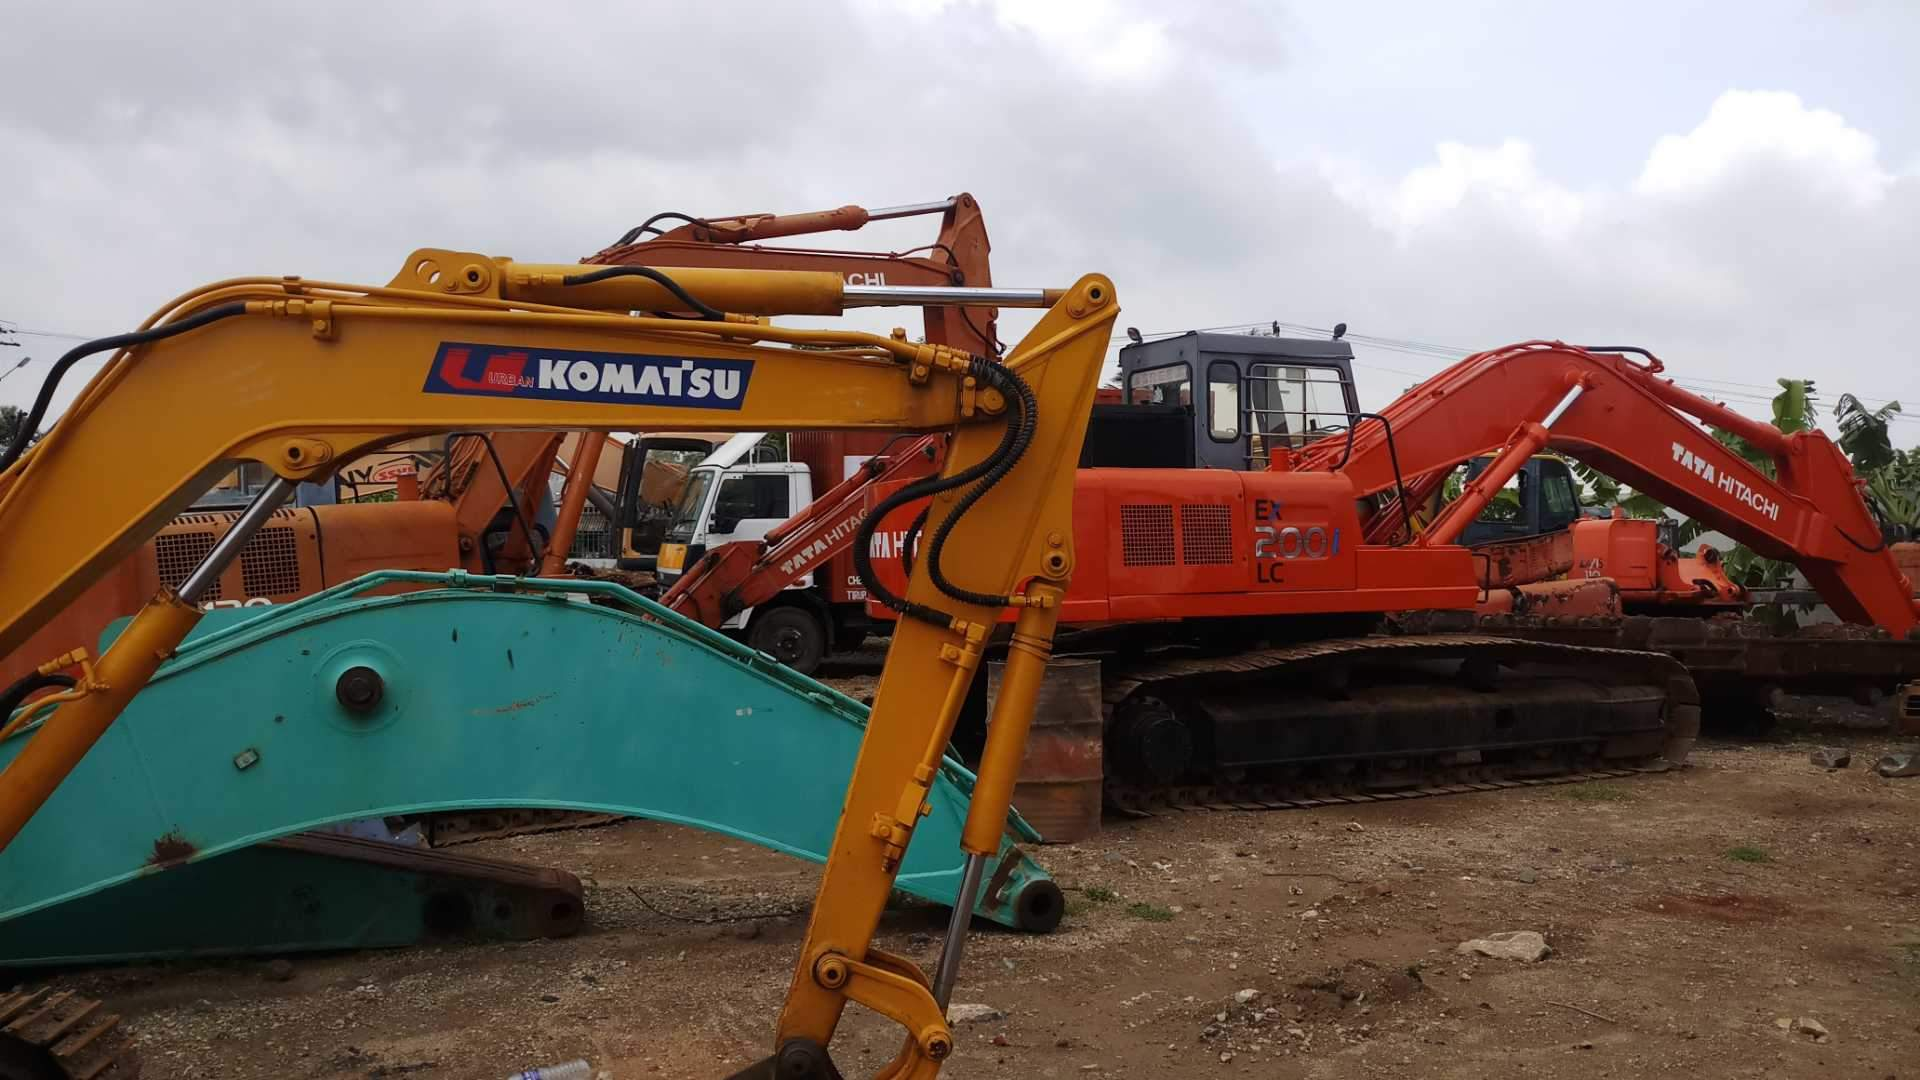 Top Excavator Repair & Services in Salem - Best Excavator